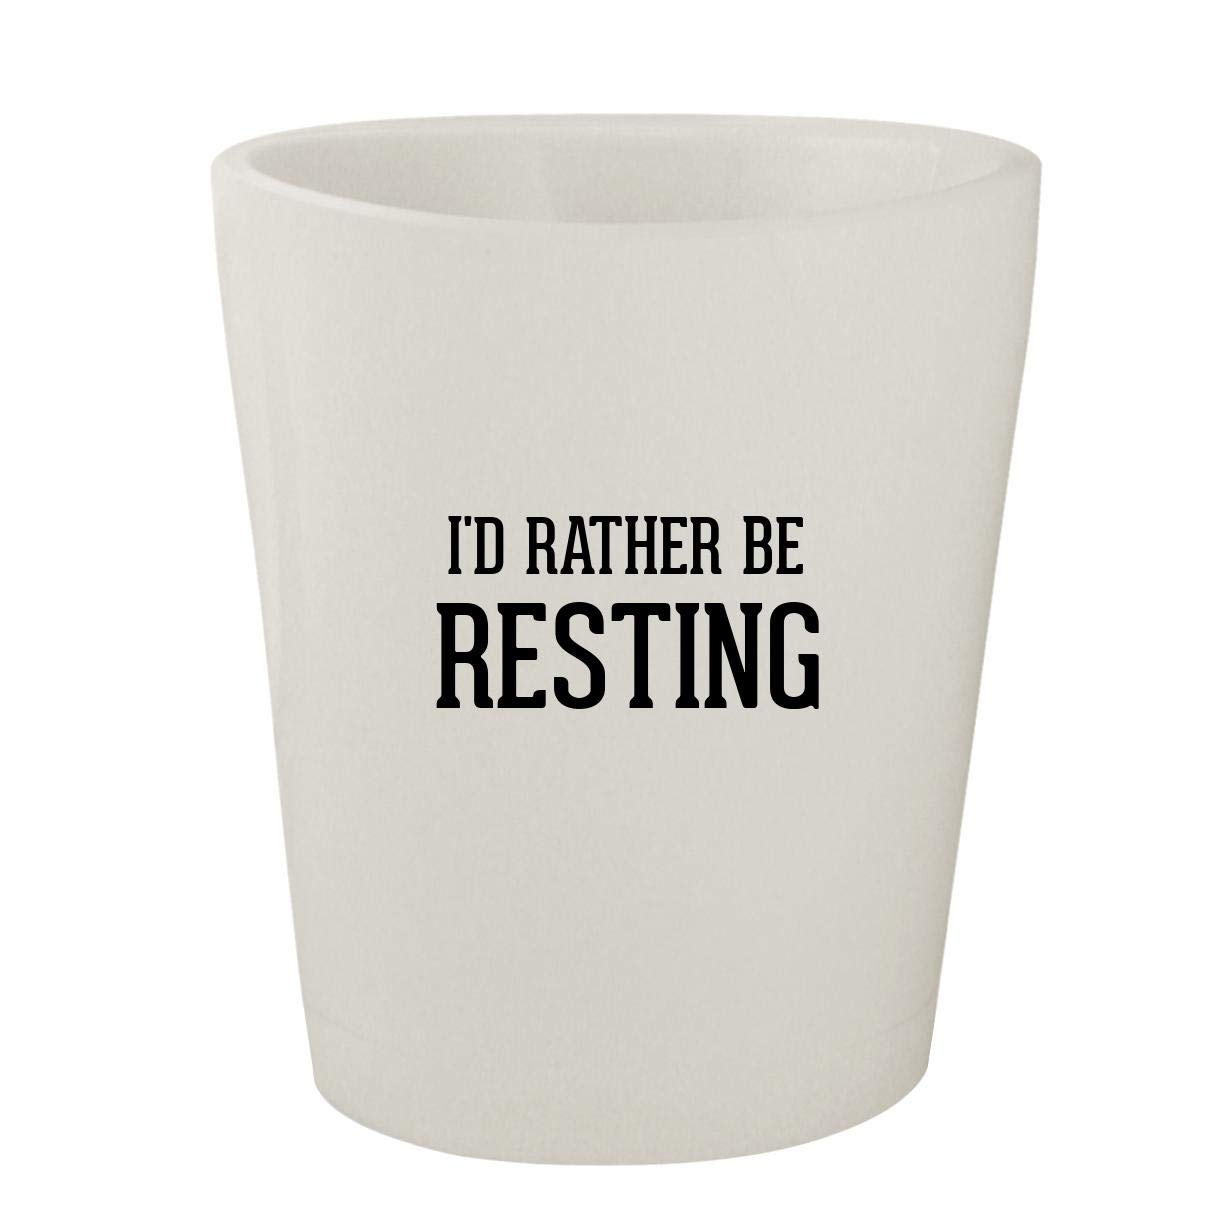 I'd Rather Be RESTING - White Ceramic 1.5oz Shot Glass